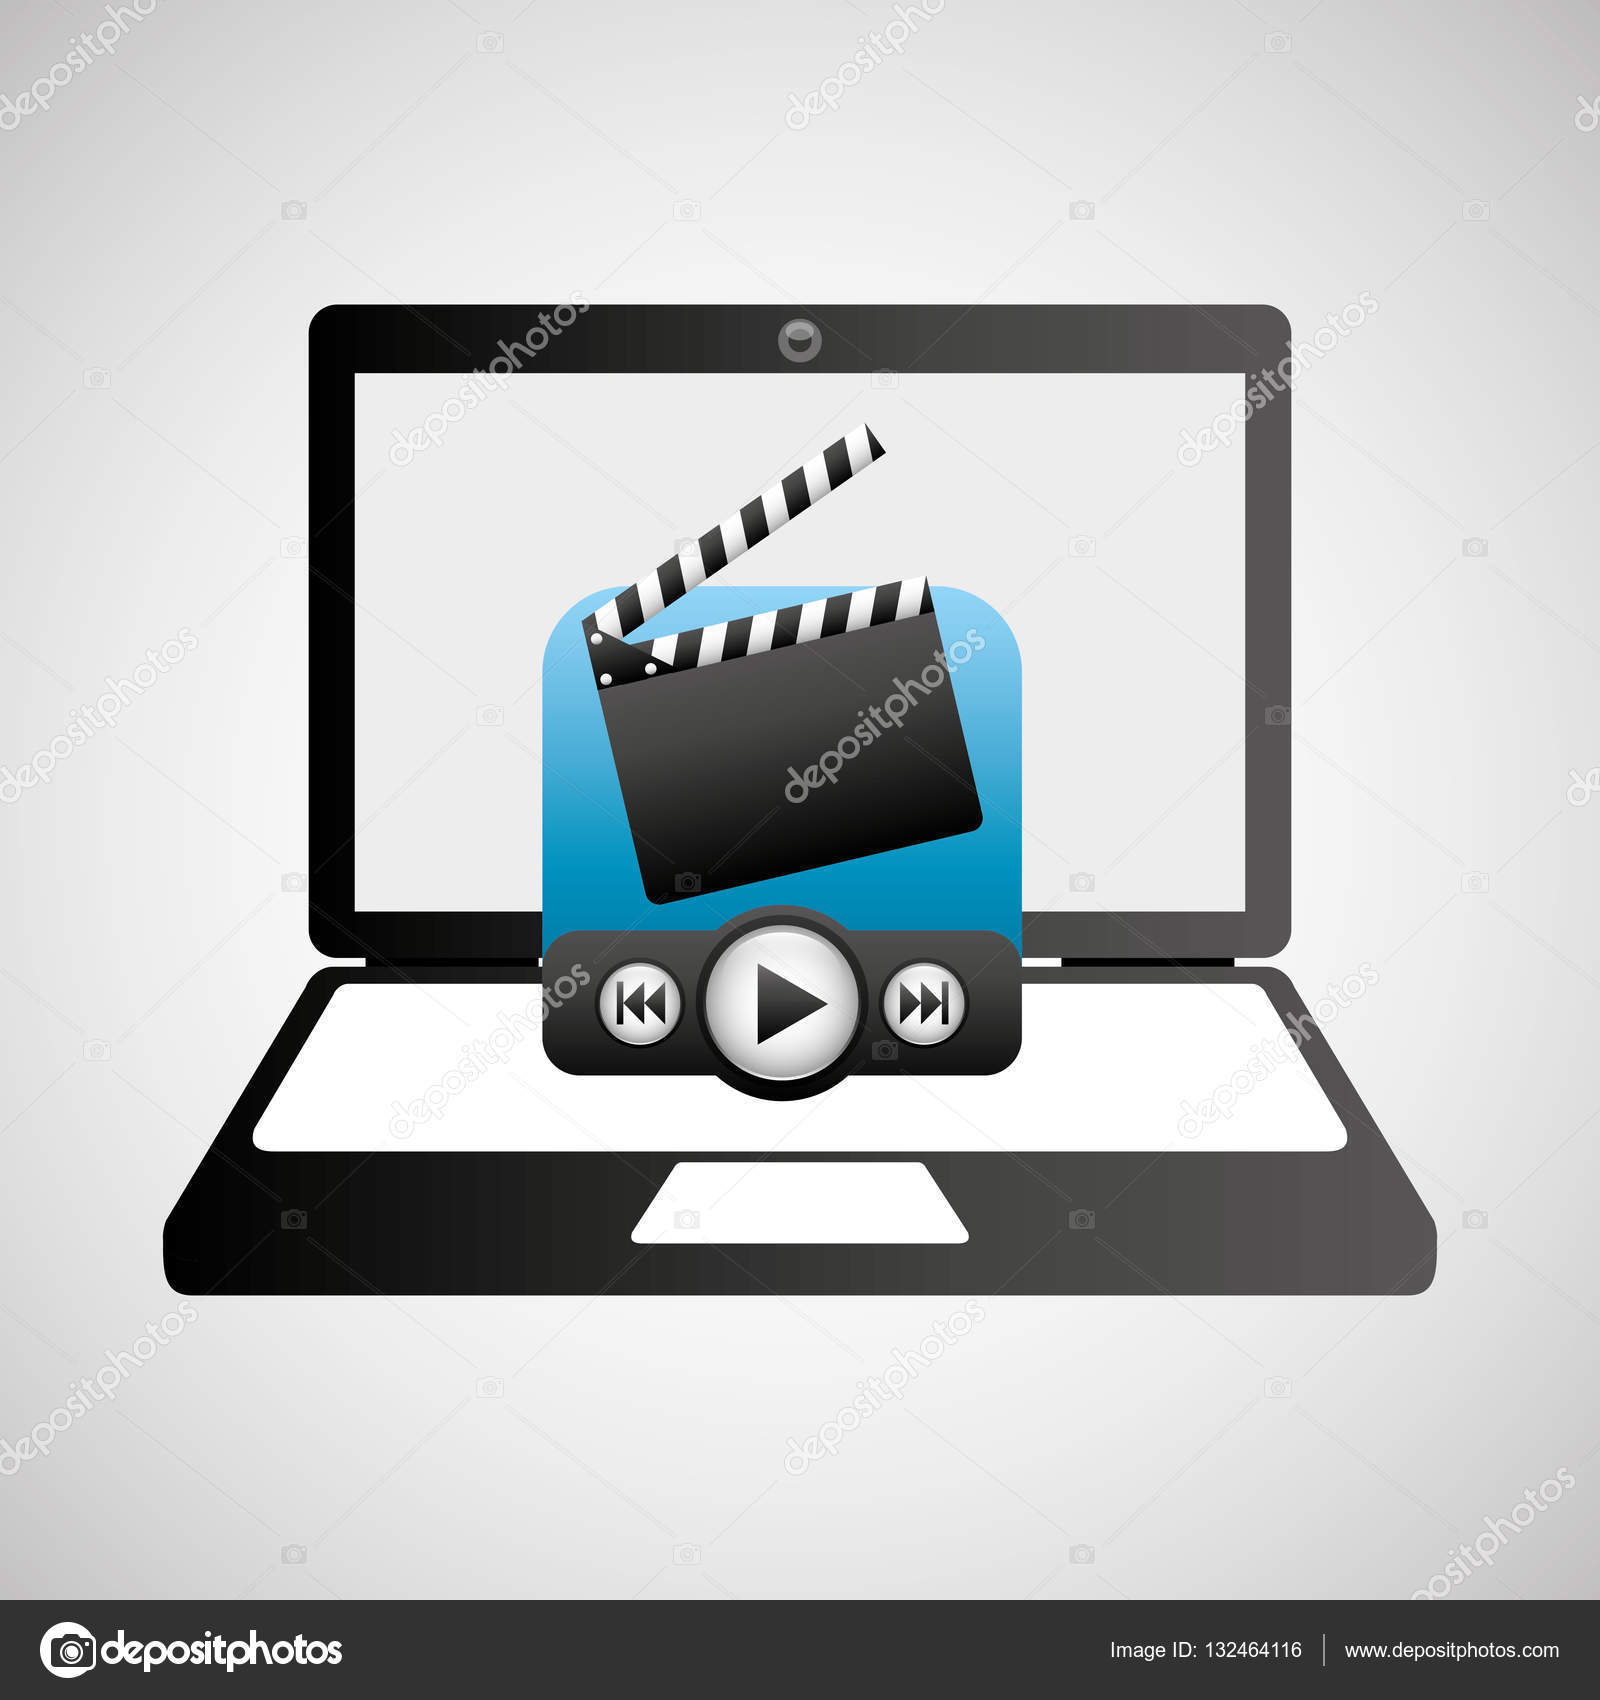 media player free download for laptop